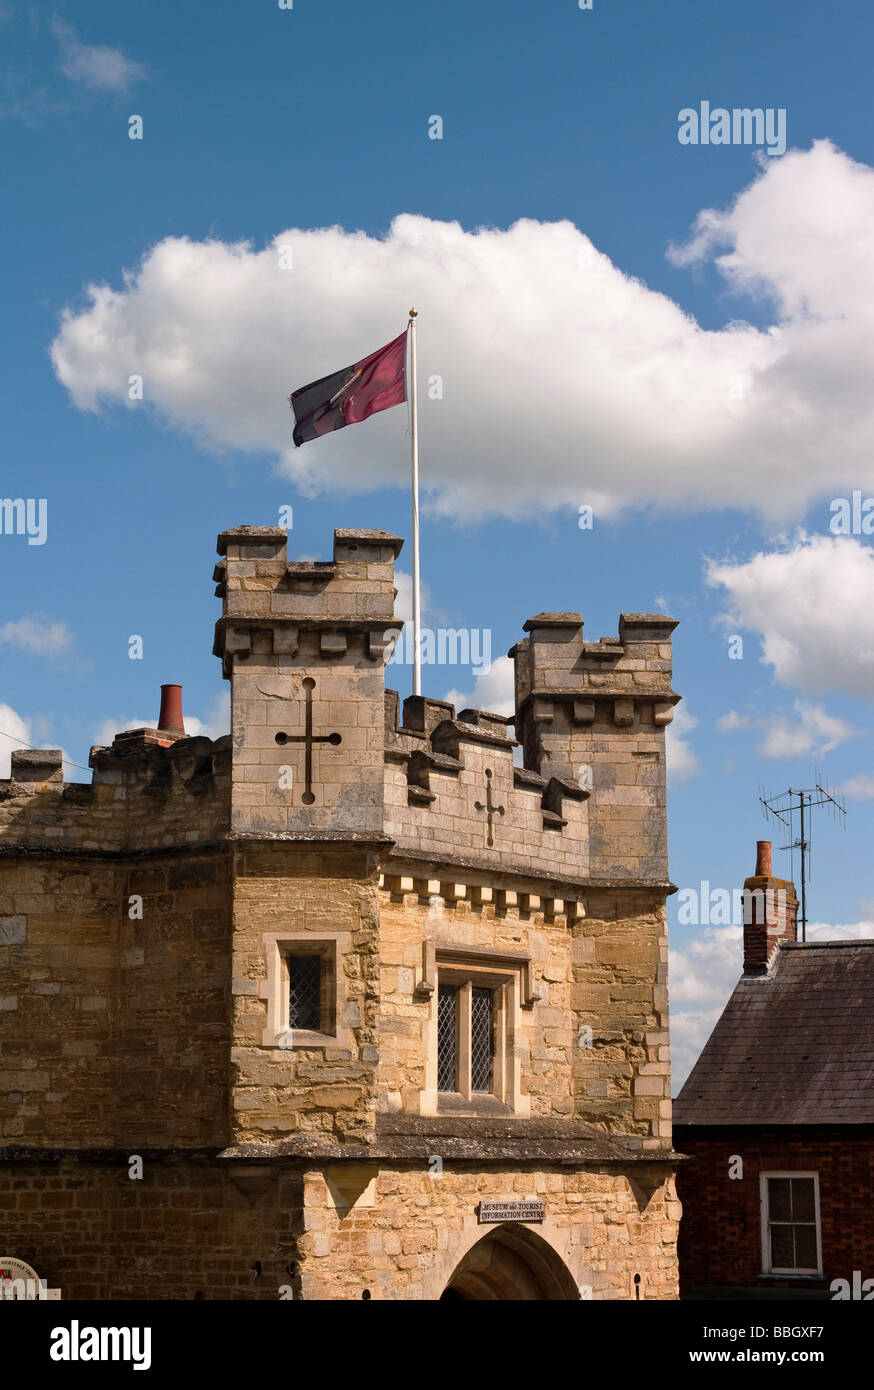 Turrets and flag on the old Gaol now Tourist Information Centre in Buckingham town England UK - Stock Image